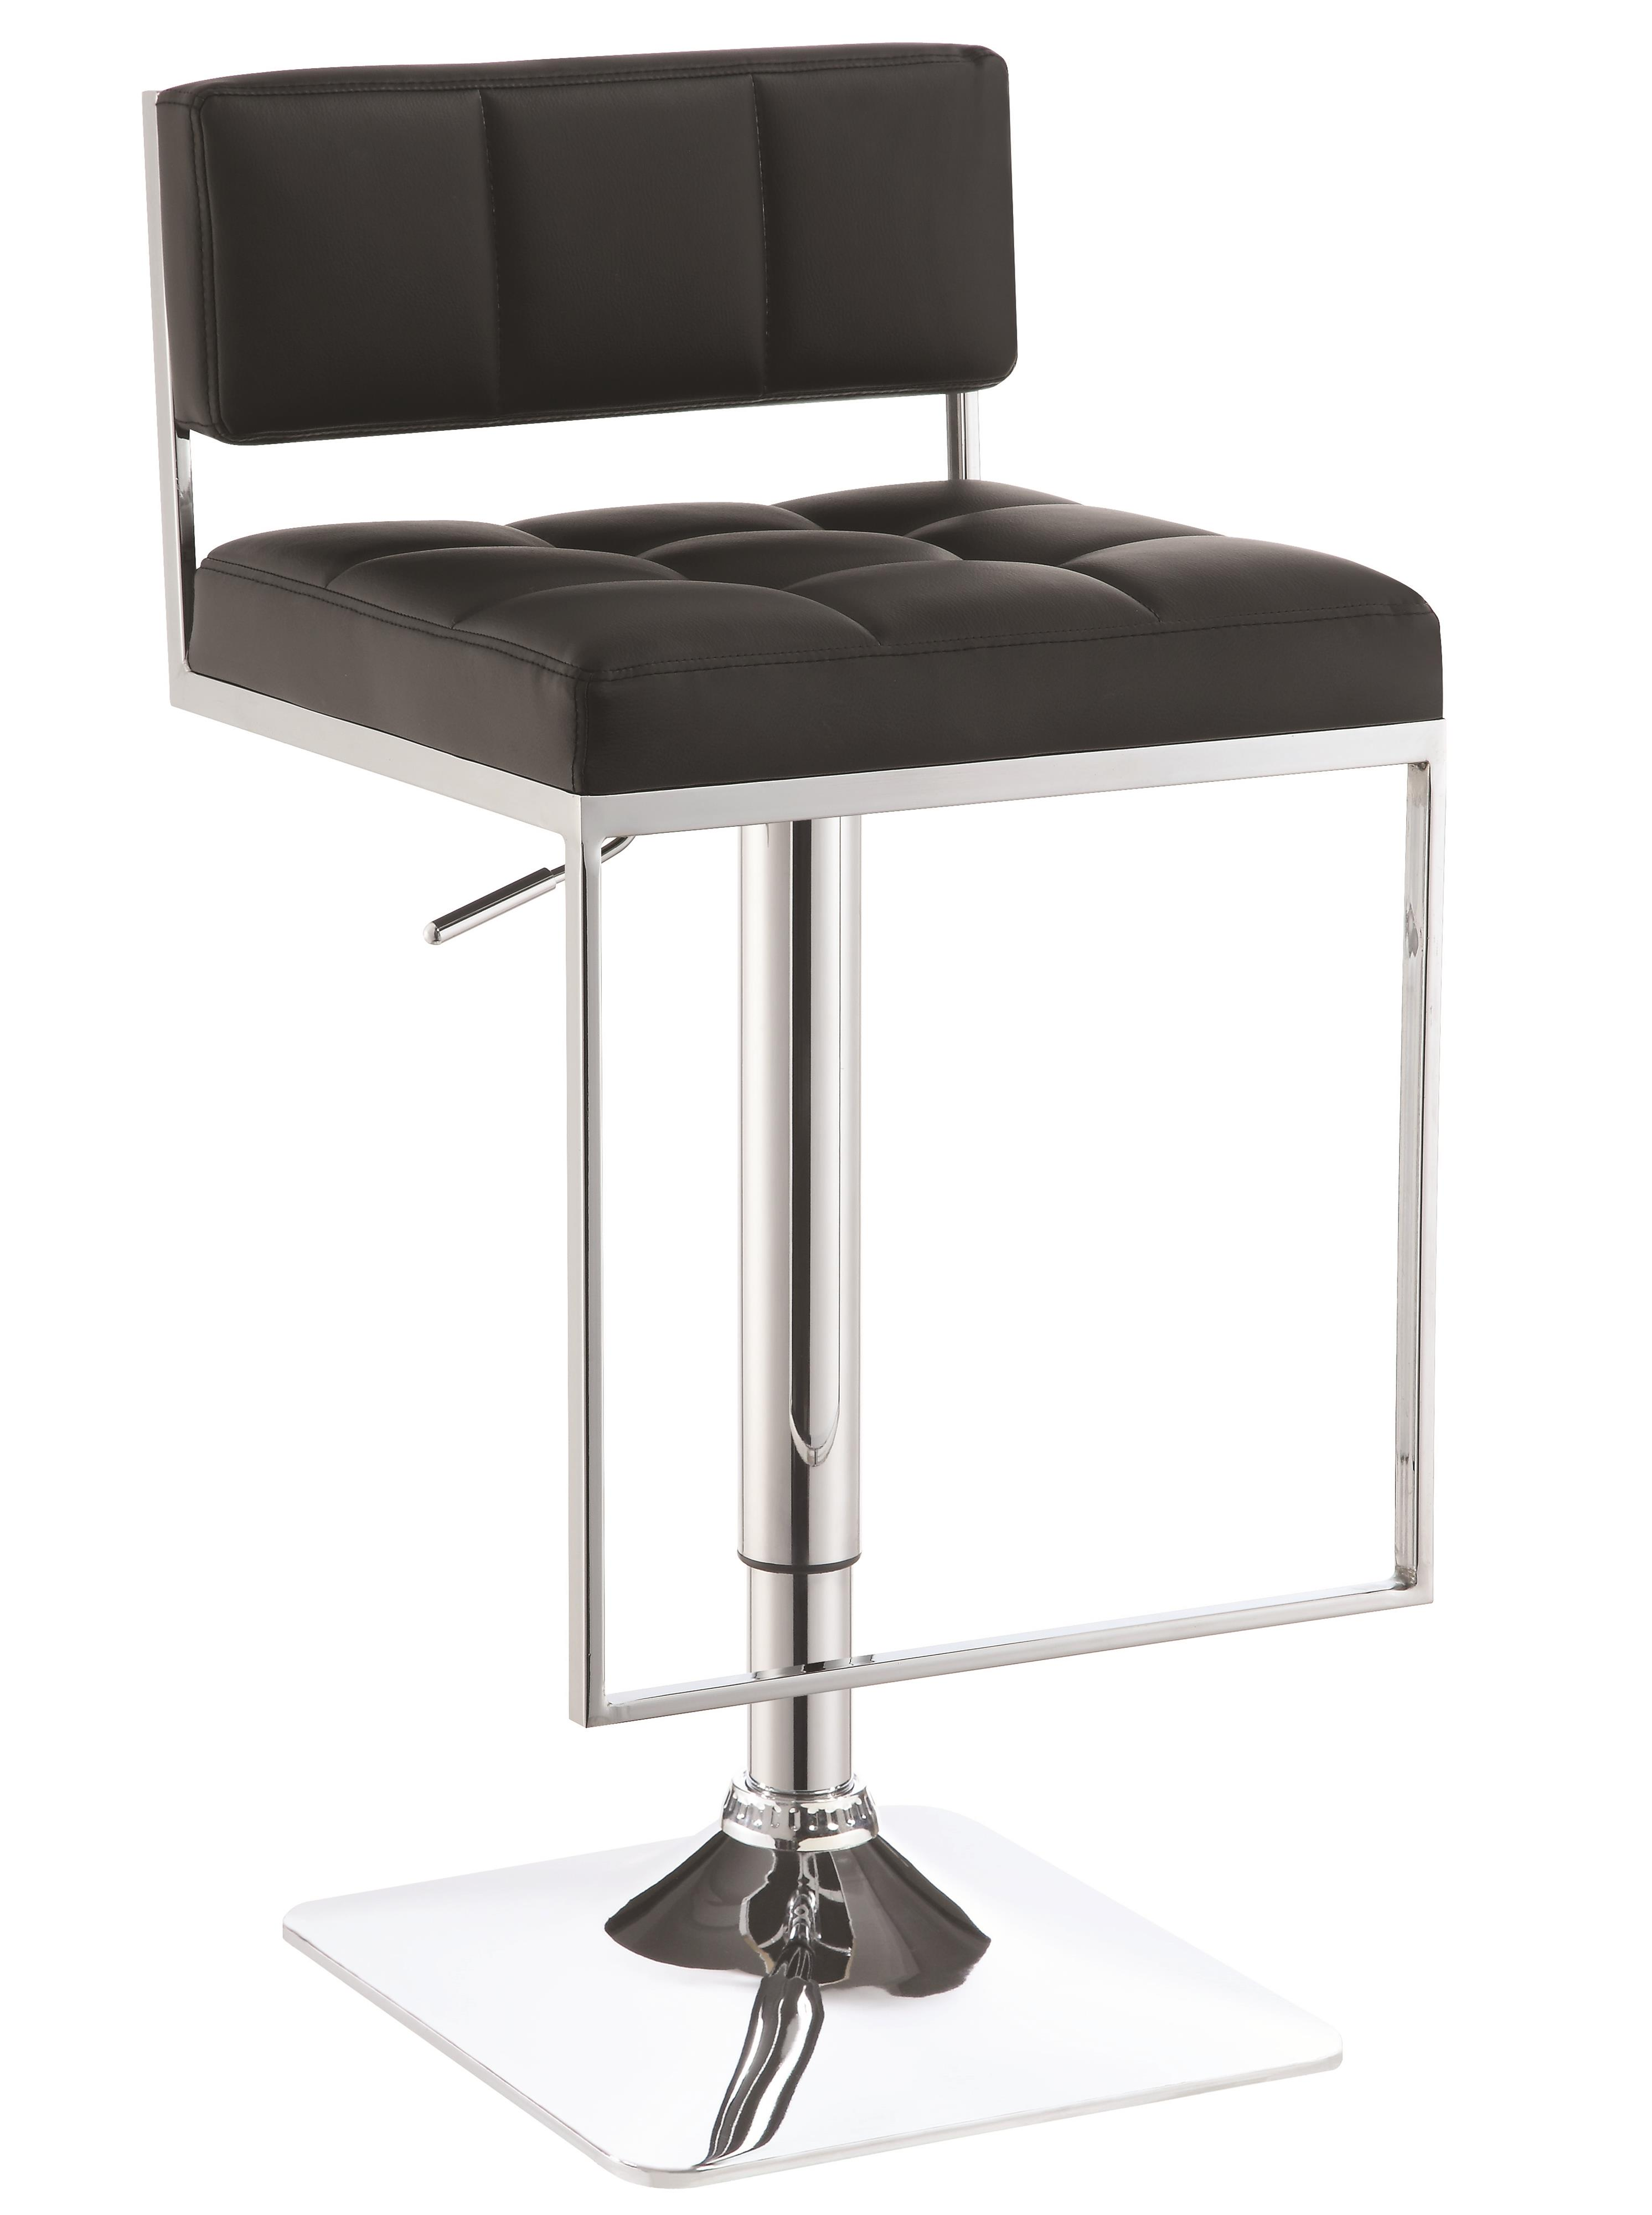 Dining Chairs and Bar Stools Adjustable Bar Stool by Coaster at Lapeer Furniture & Mattress Center